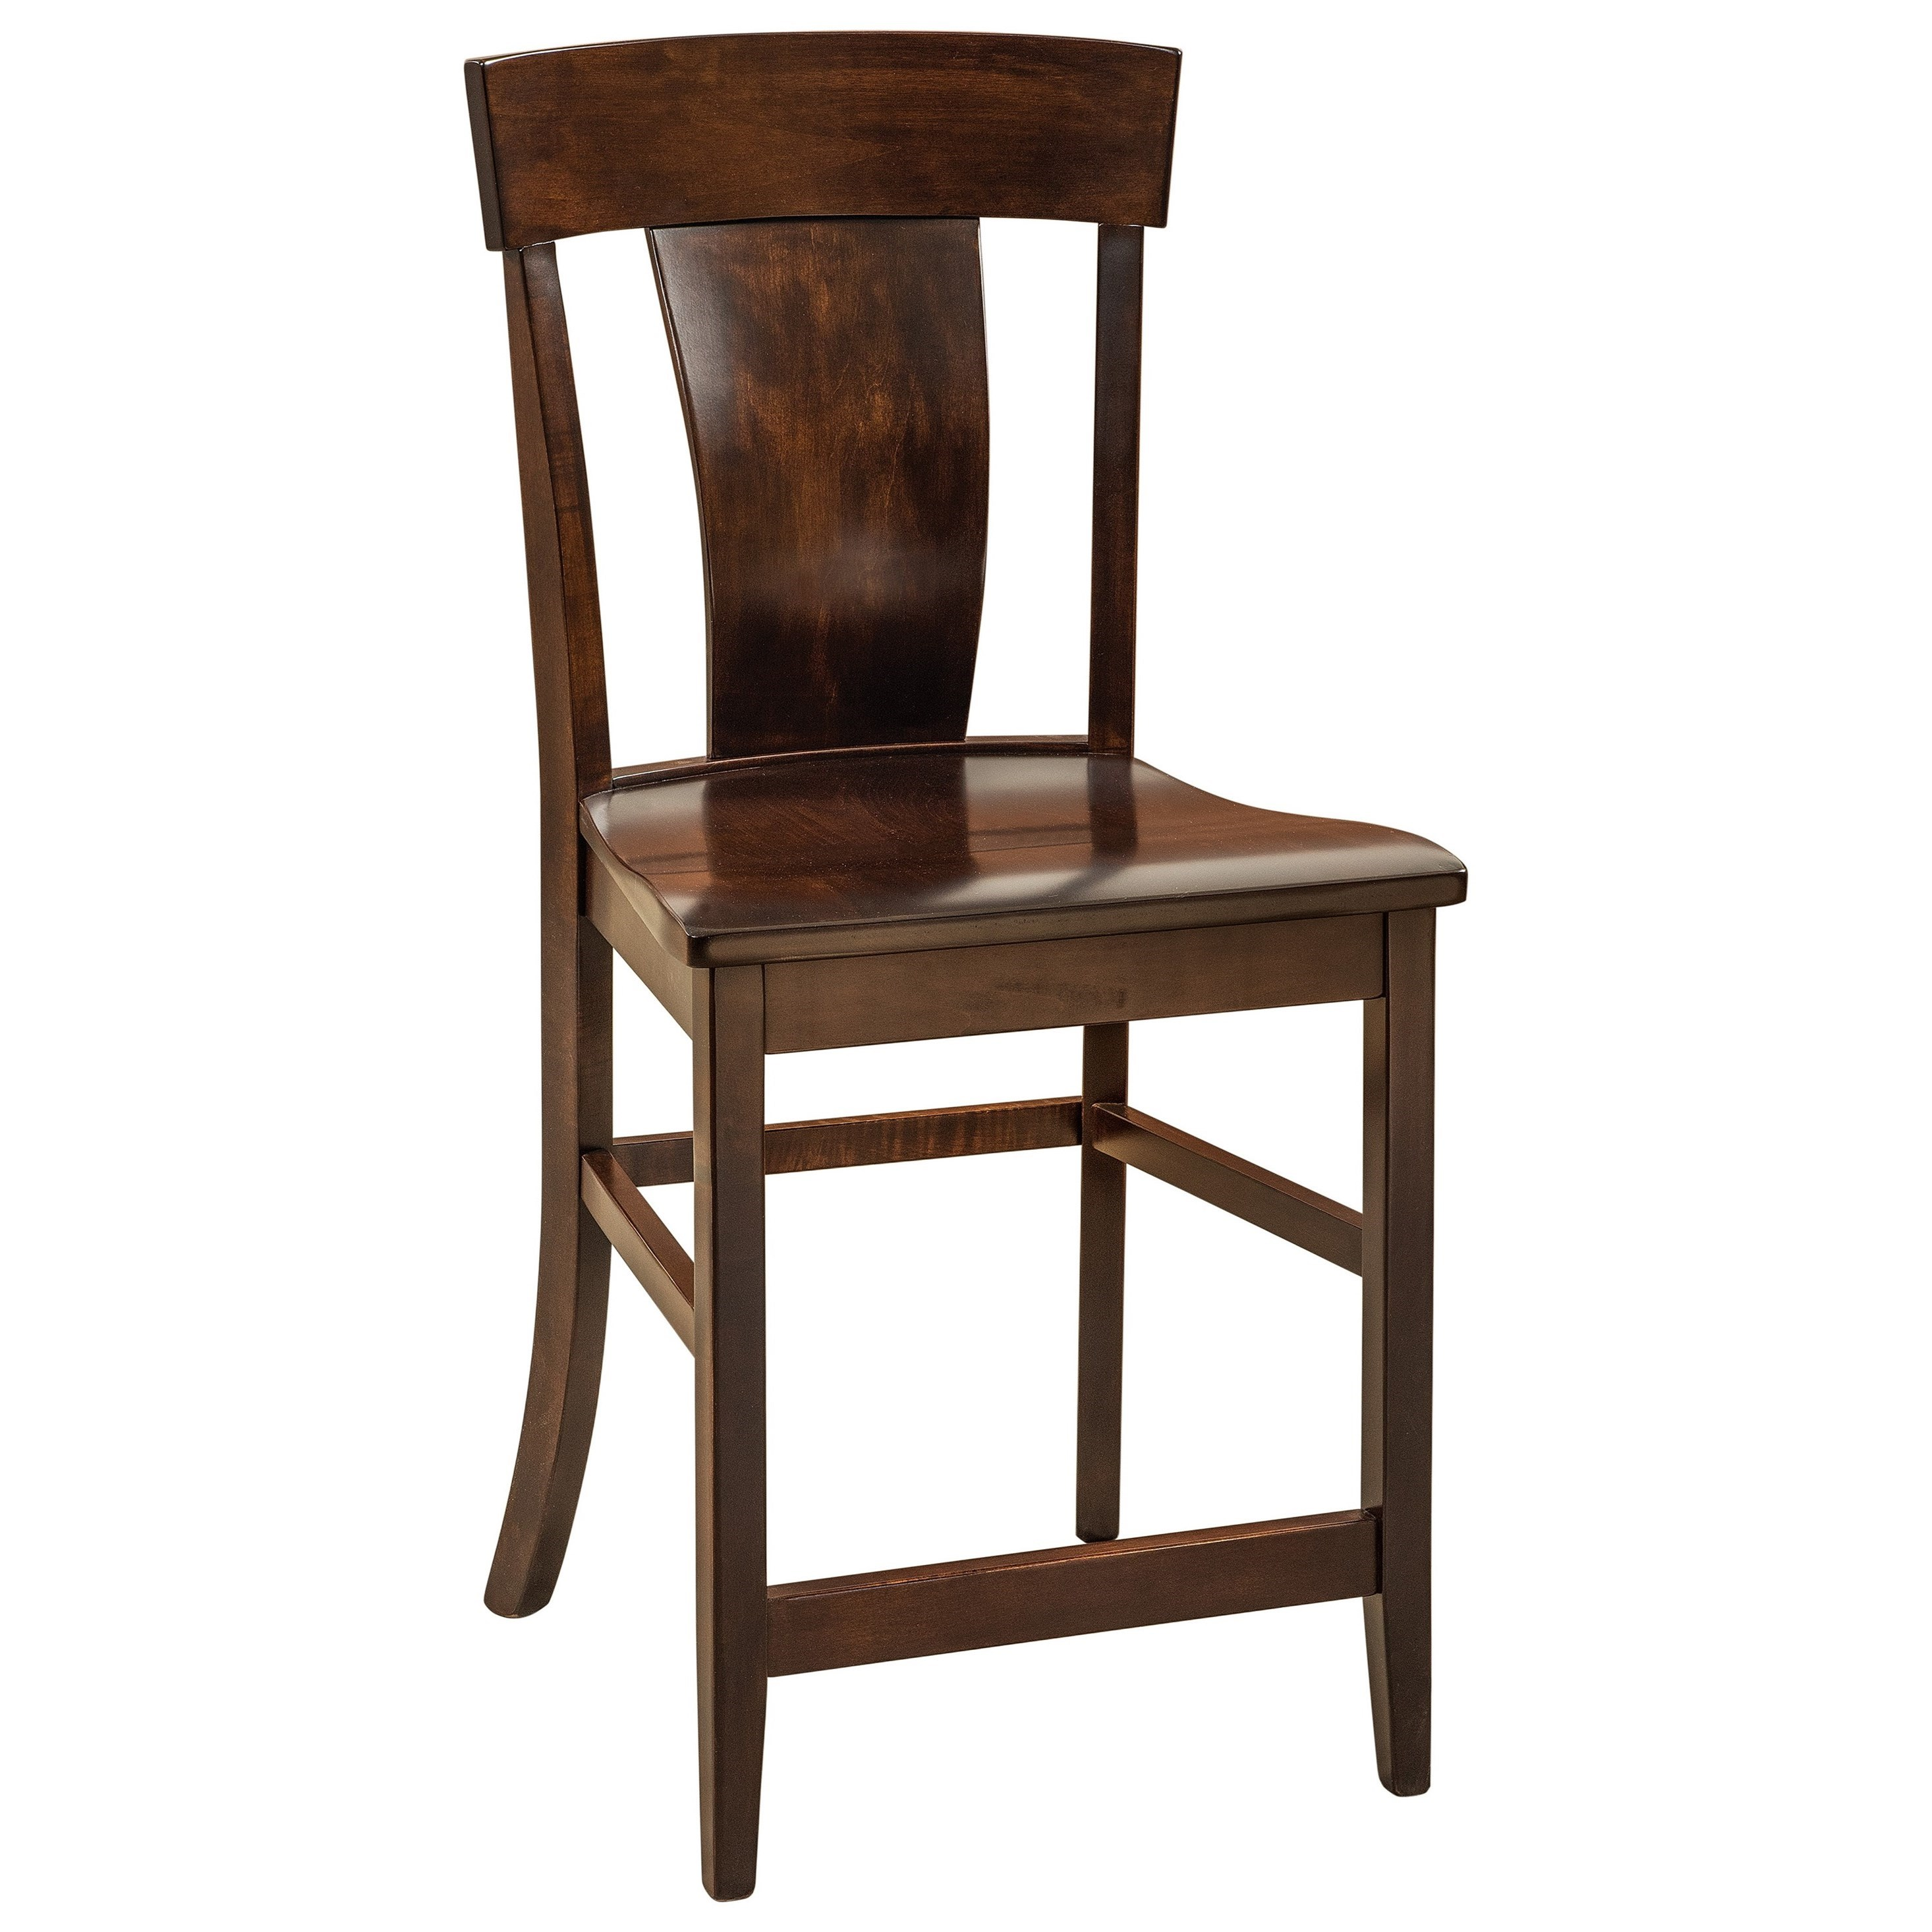 Baldwin Stationary Counter Height Stool - Wood Seat by F&N Woodworking at Mueller Furniture